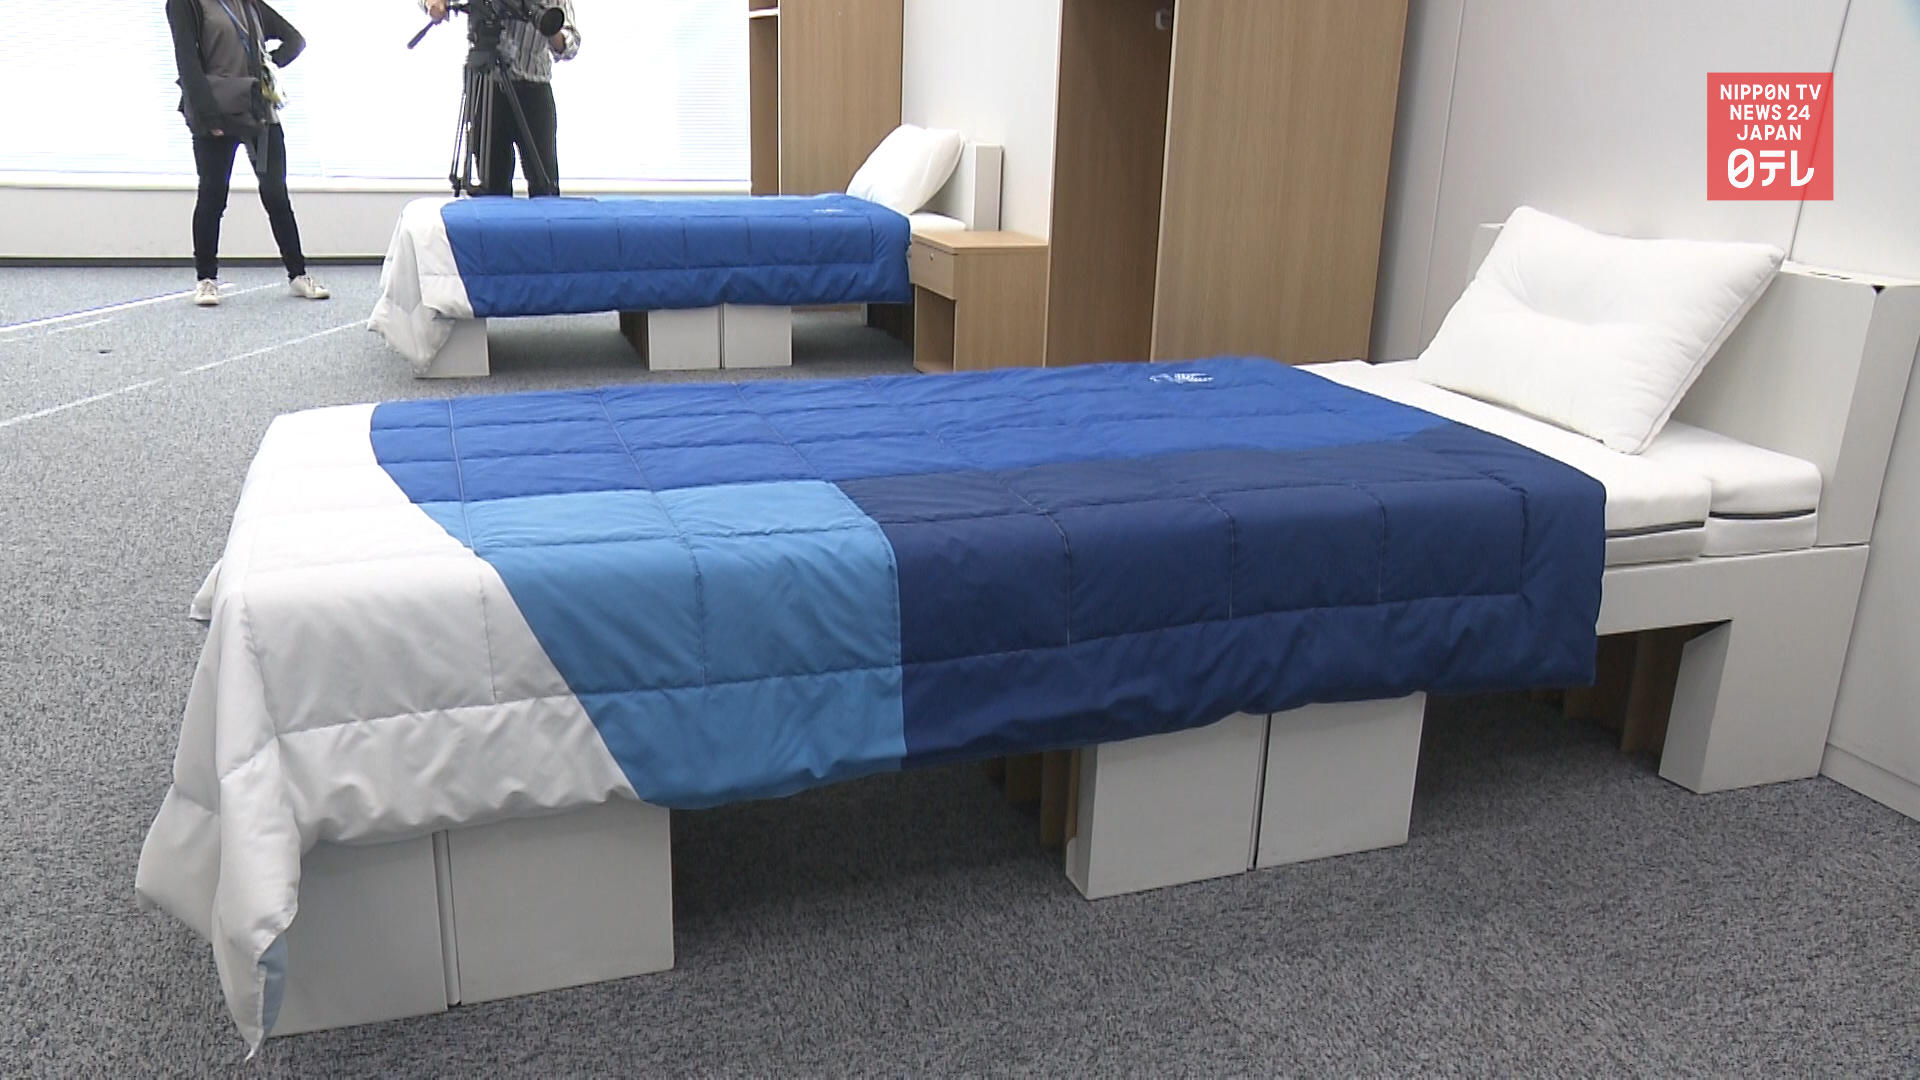 Cardboard beds for Olympians